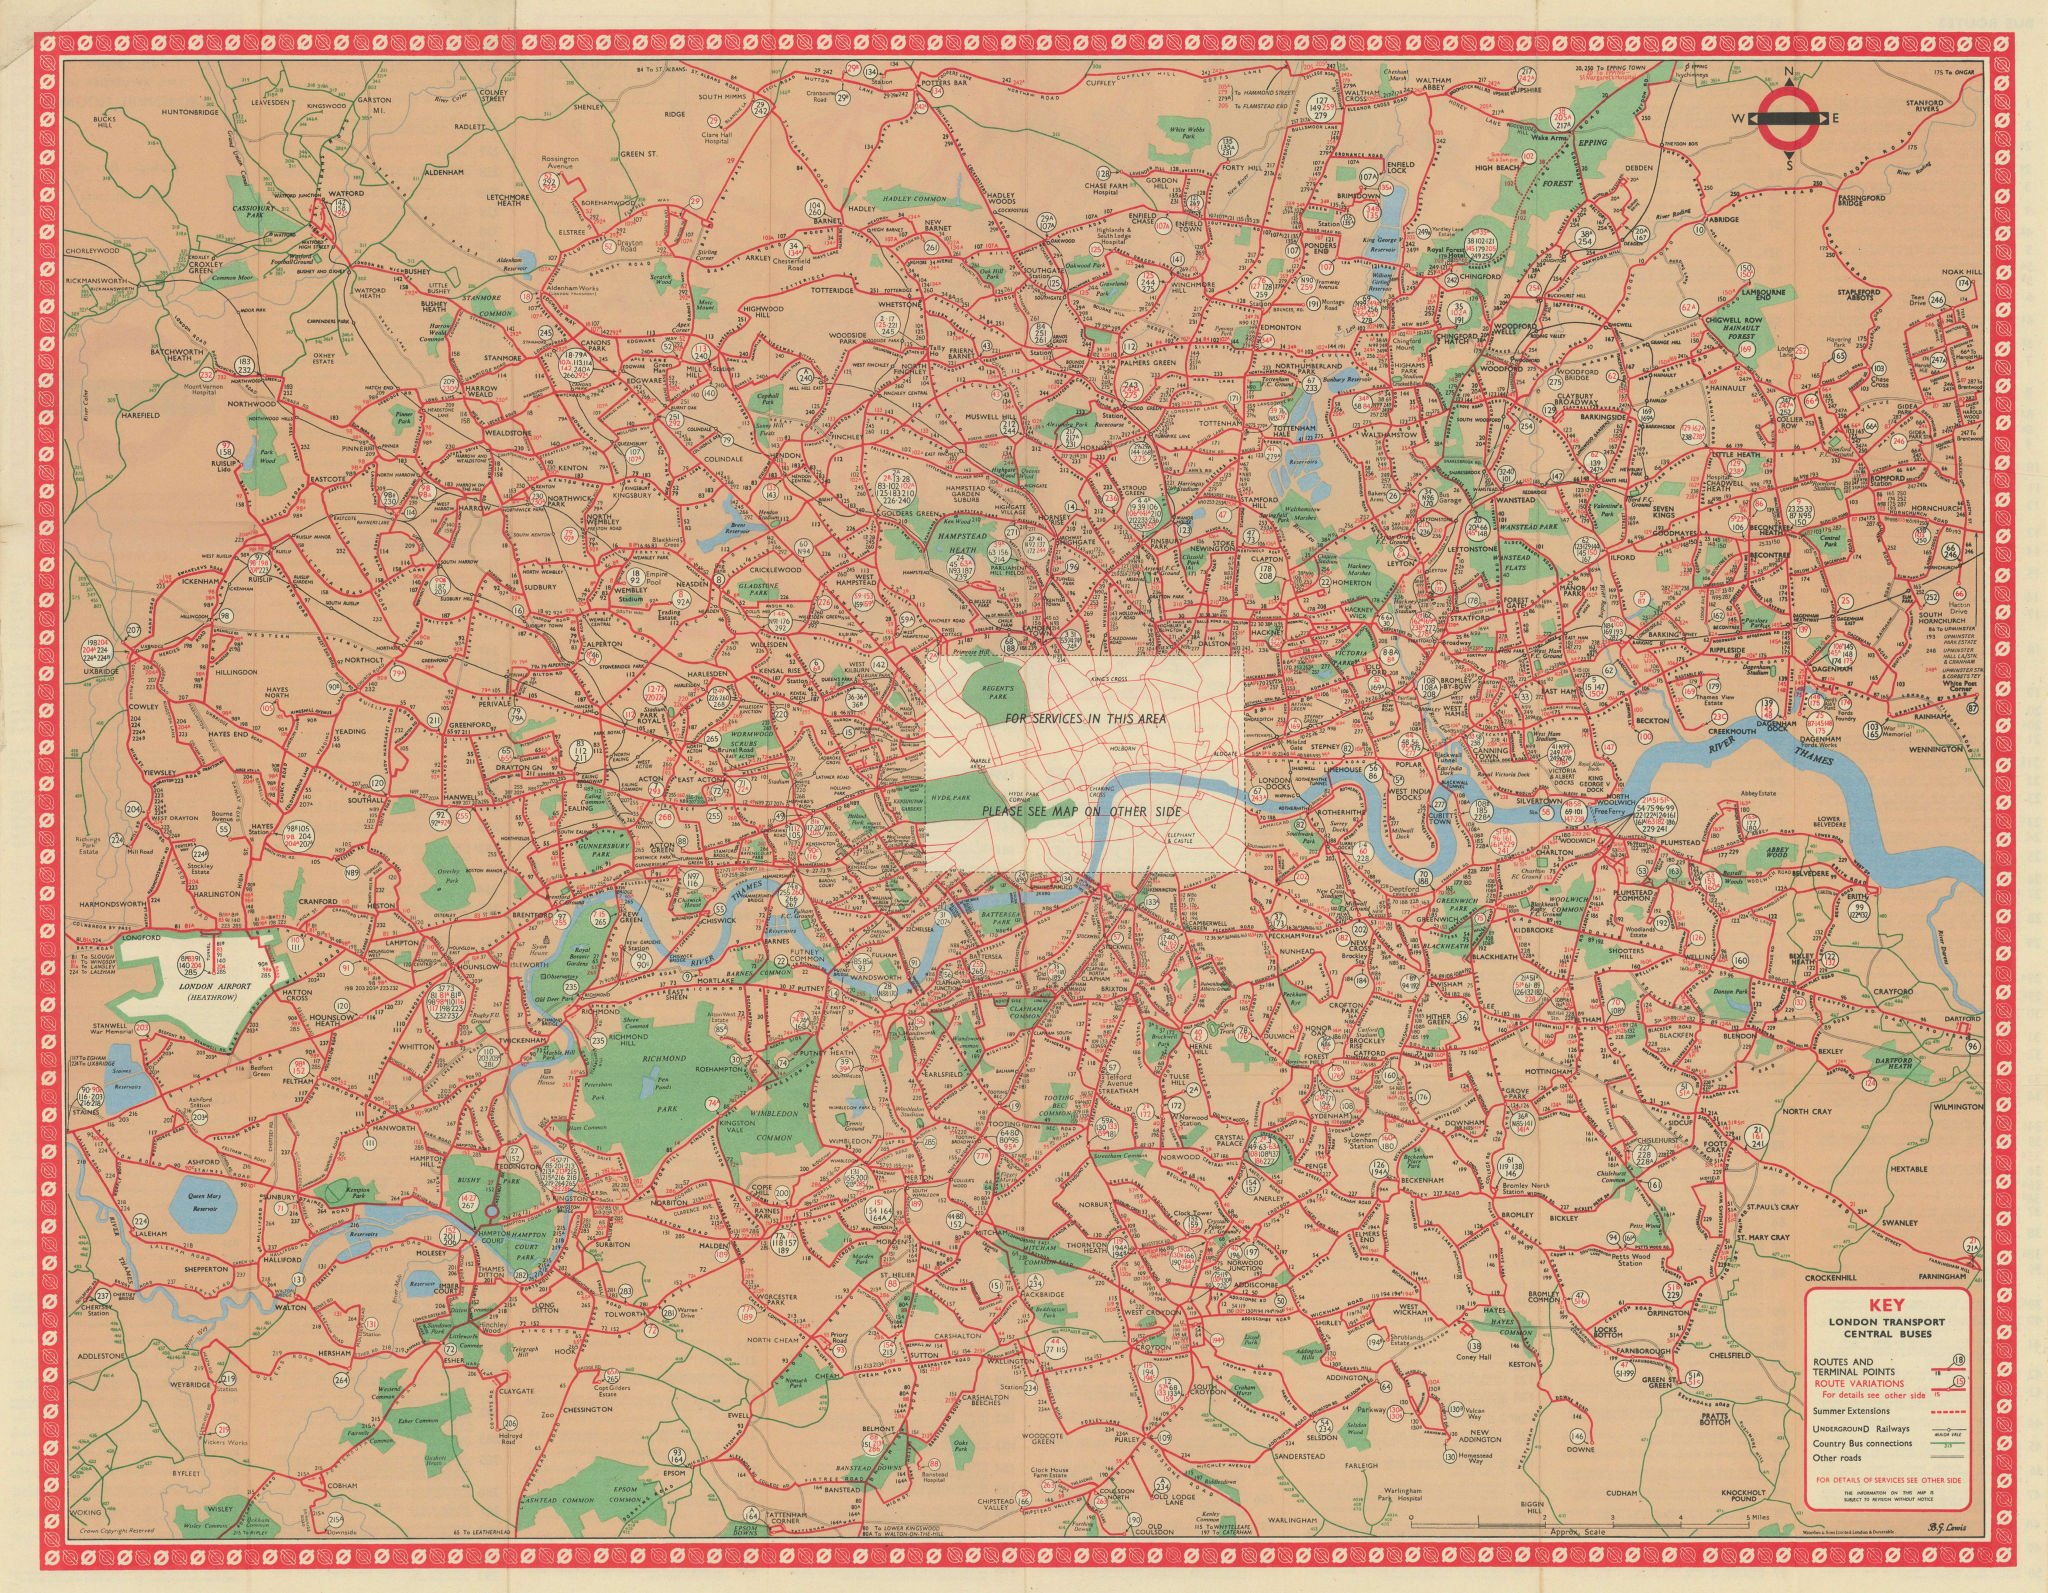 London Transport Central Buses map and list of routes. LEWIS #1 1963 old